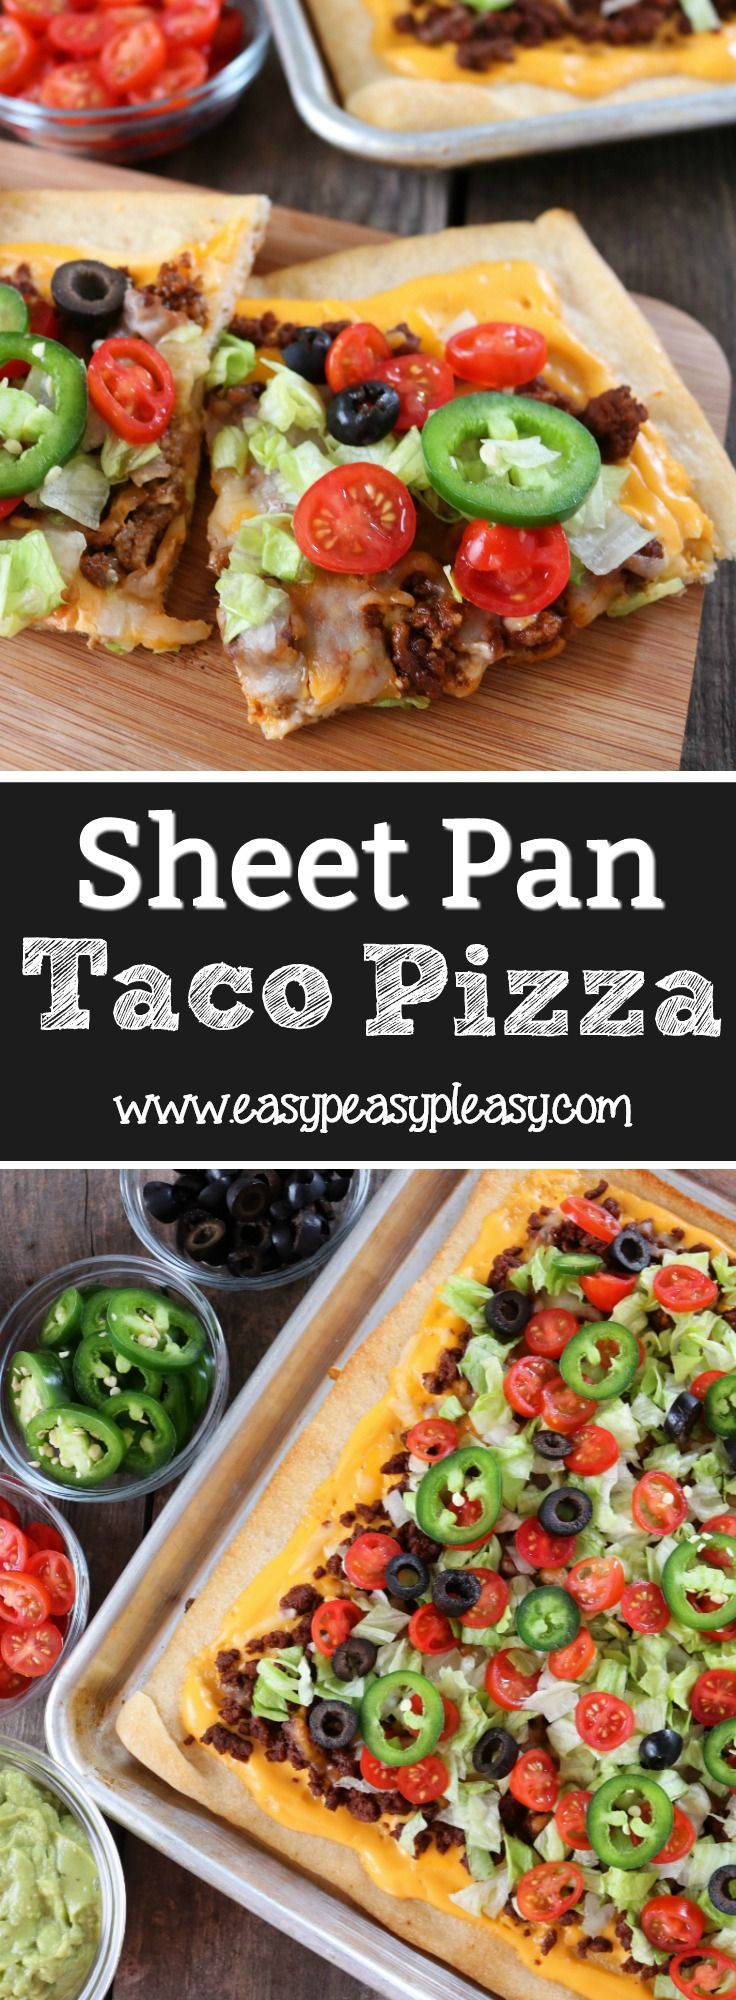 Win over your family and friends with this easy weeknight meal or game day recipe. The ultimate sheet pan taco pizza is perfect for feeding your family or a crowd.